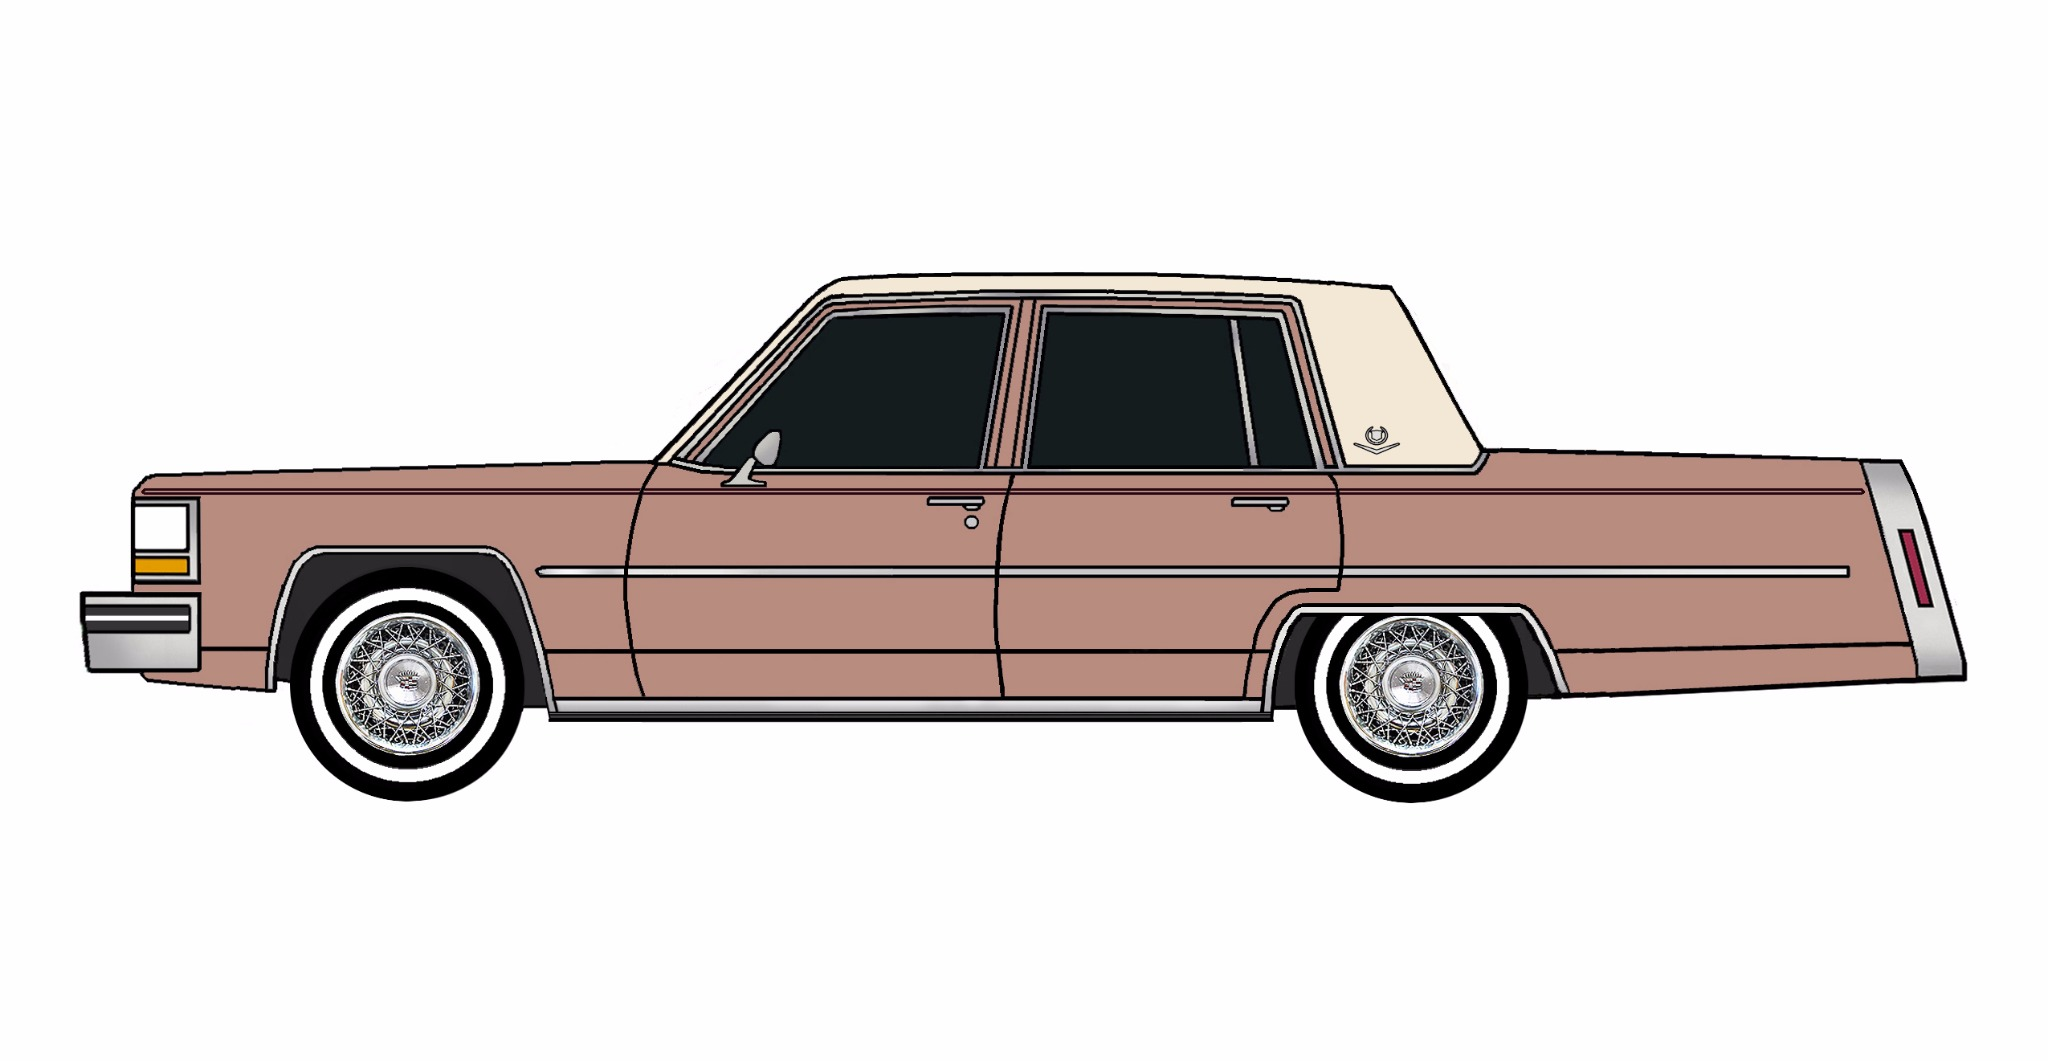 1980 Cadillac Deville CLAY ROSE